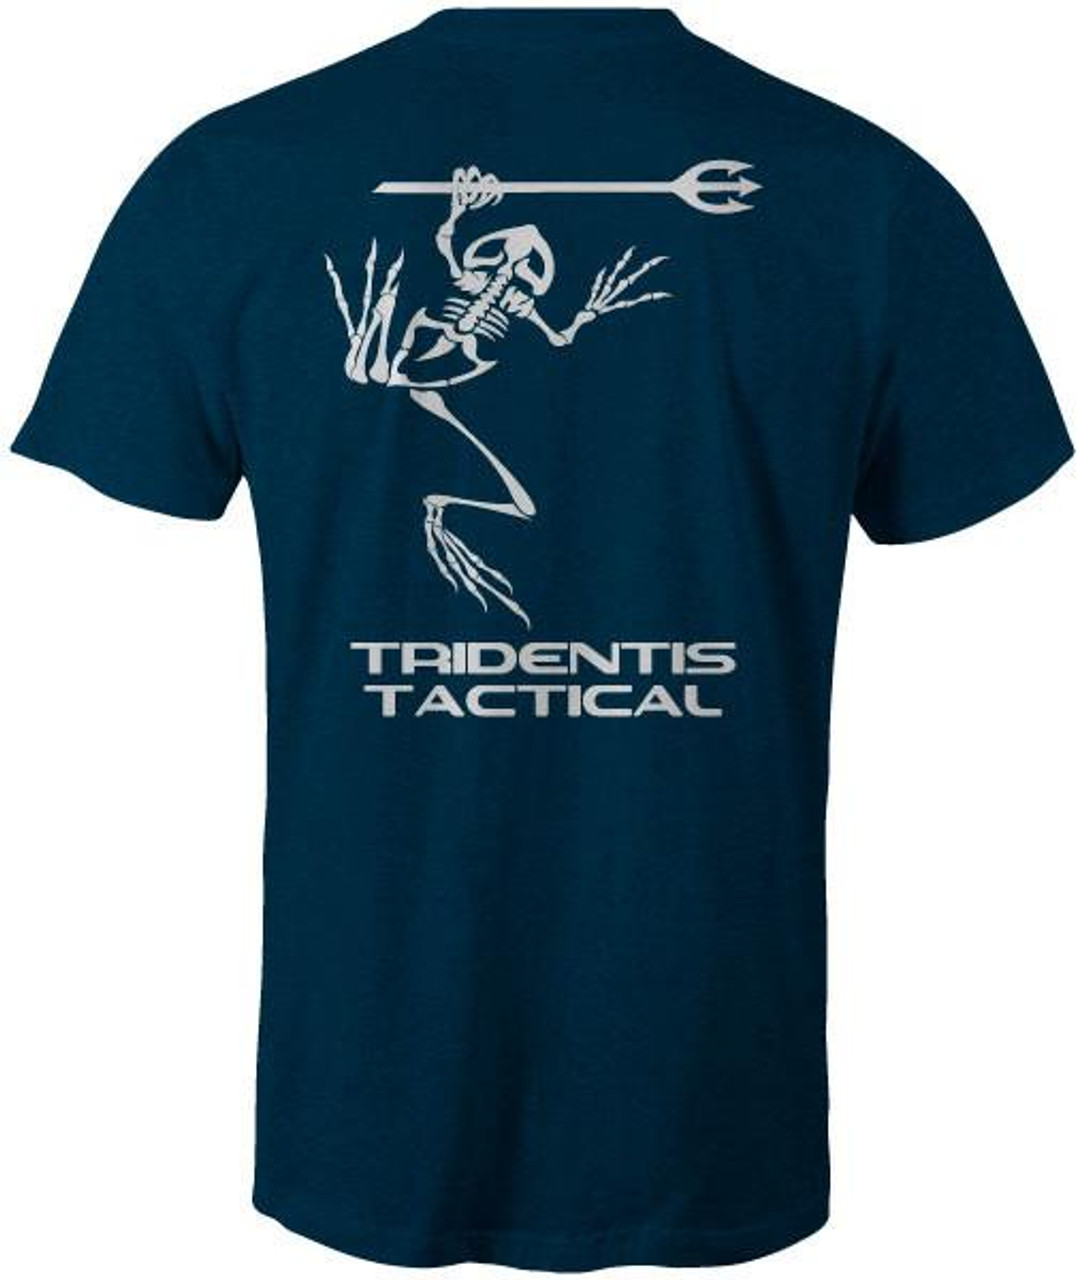 Tridentis Tactical Heather Navy Men's T-Shirt White Logo and Lettering